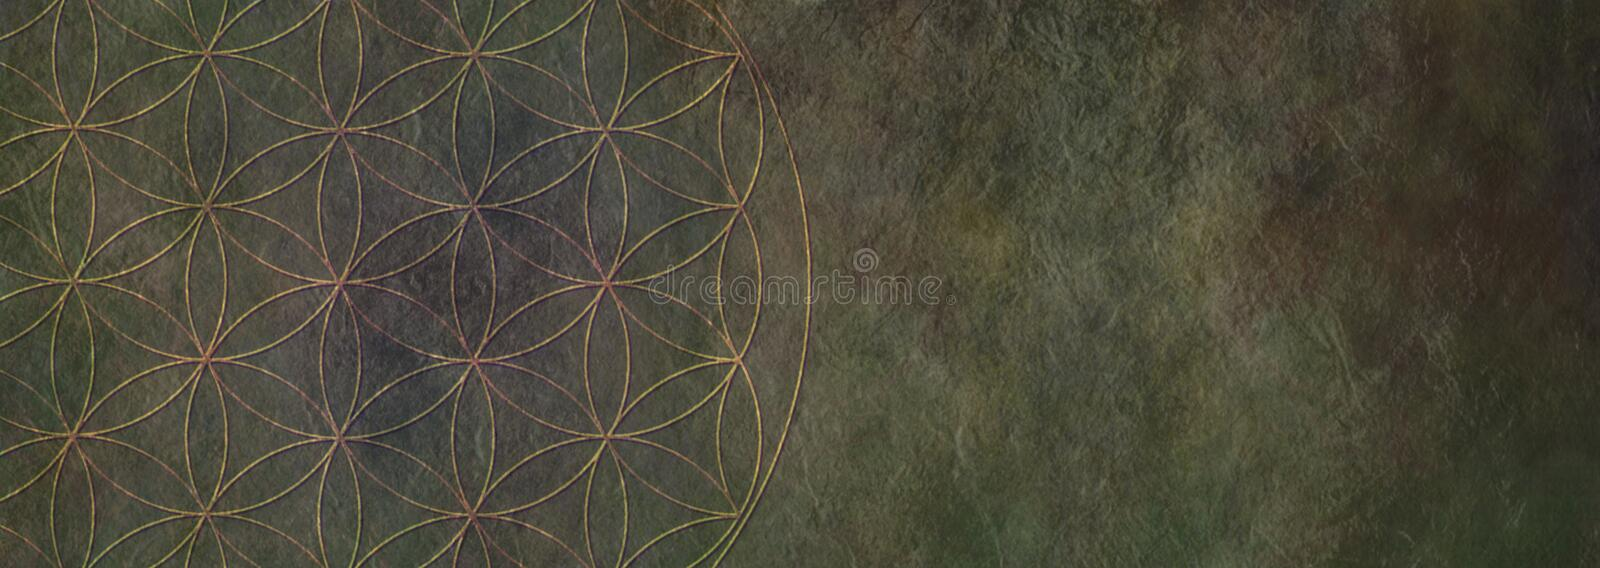 Flower of Life Rustic Stone Background -. Circular flower of life symbol pattern on left side of a wide dark rustic stone effect background with copy space royalty free stock photos